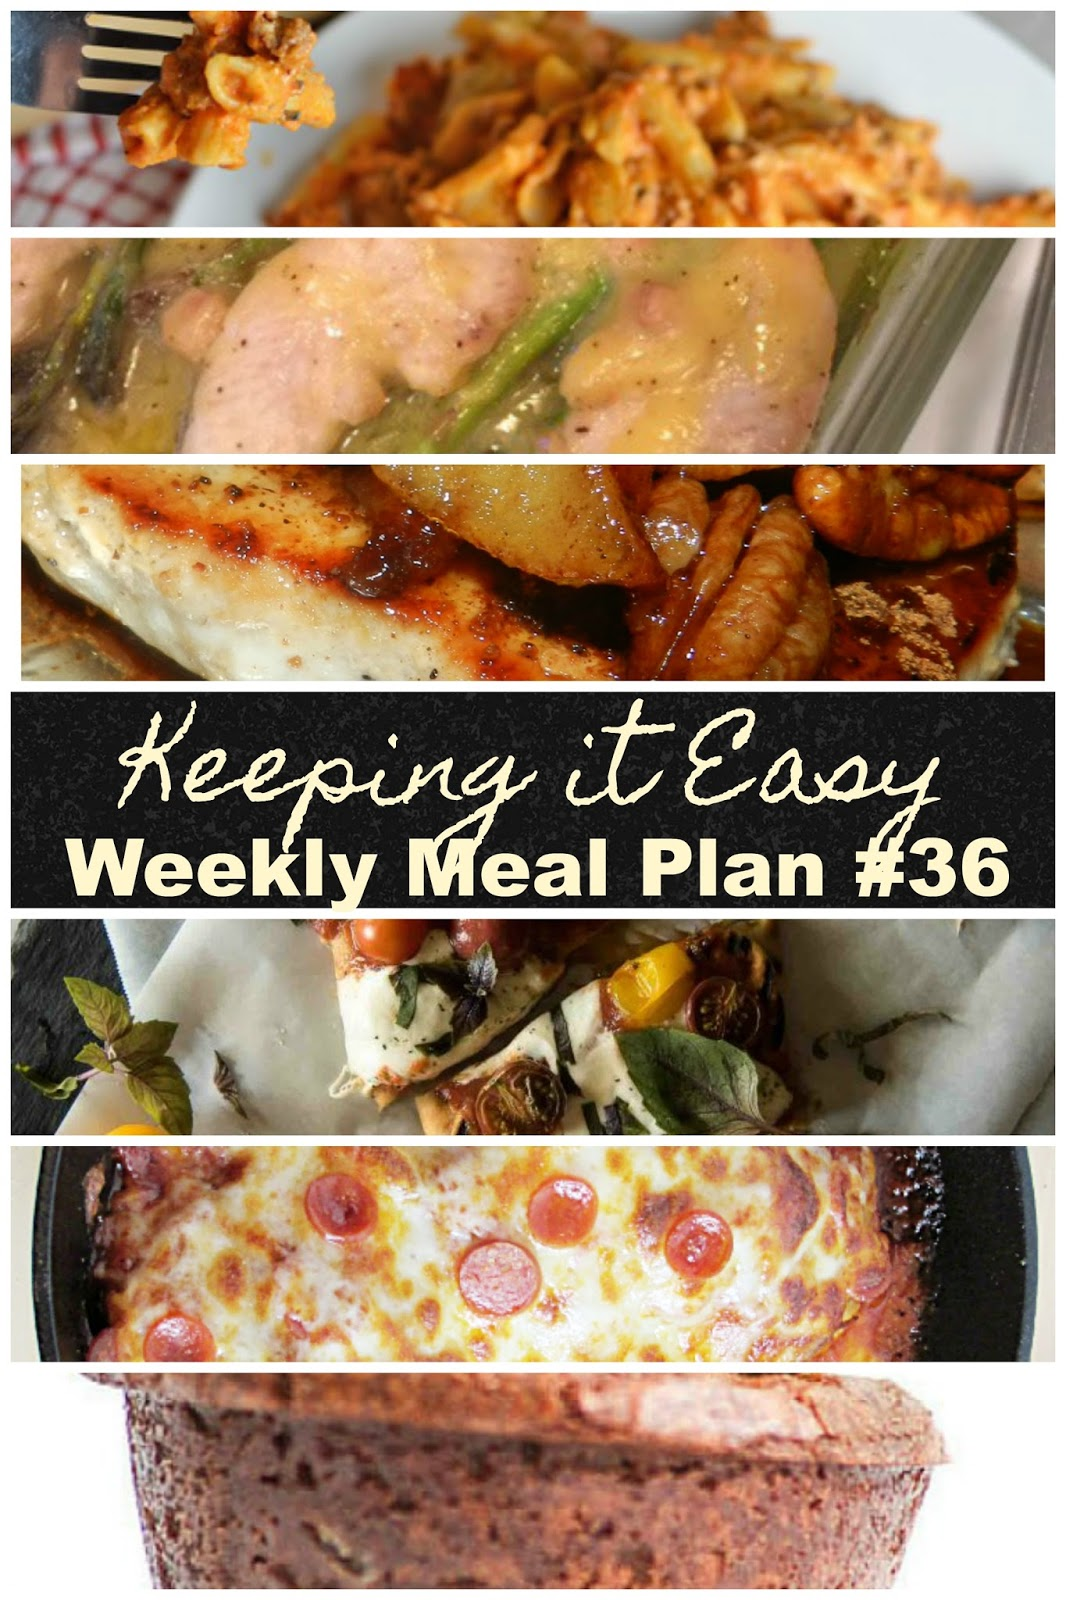 Easy Weekly Meal Plan #36 from My Fearless Kitchen. This week's meal plan includes Spinach & Tomato Veggie Omelet, Creamy Cheesy Baked Ziti, Chicken & Asparagus Casserole, Caramel Apple Pork Chops, Grilled Margherita Flatbread, Skillet Pizza Chicken, and Gooey S'More Brownie Cups.